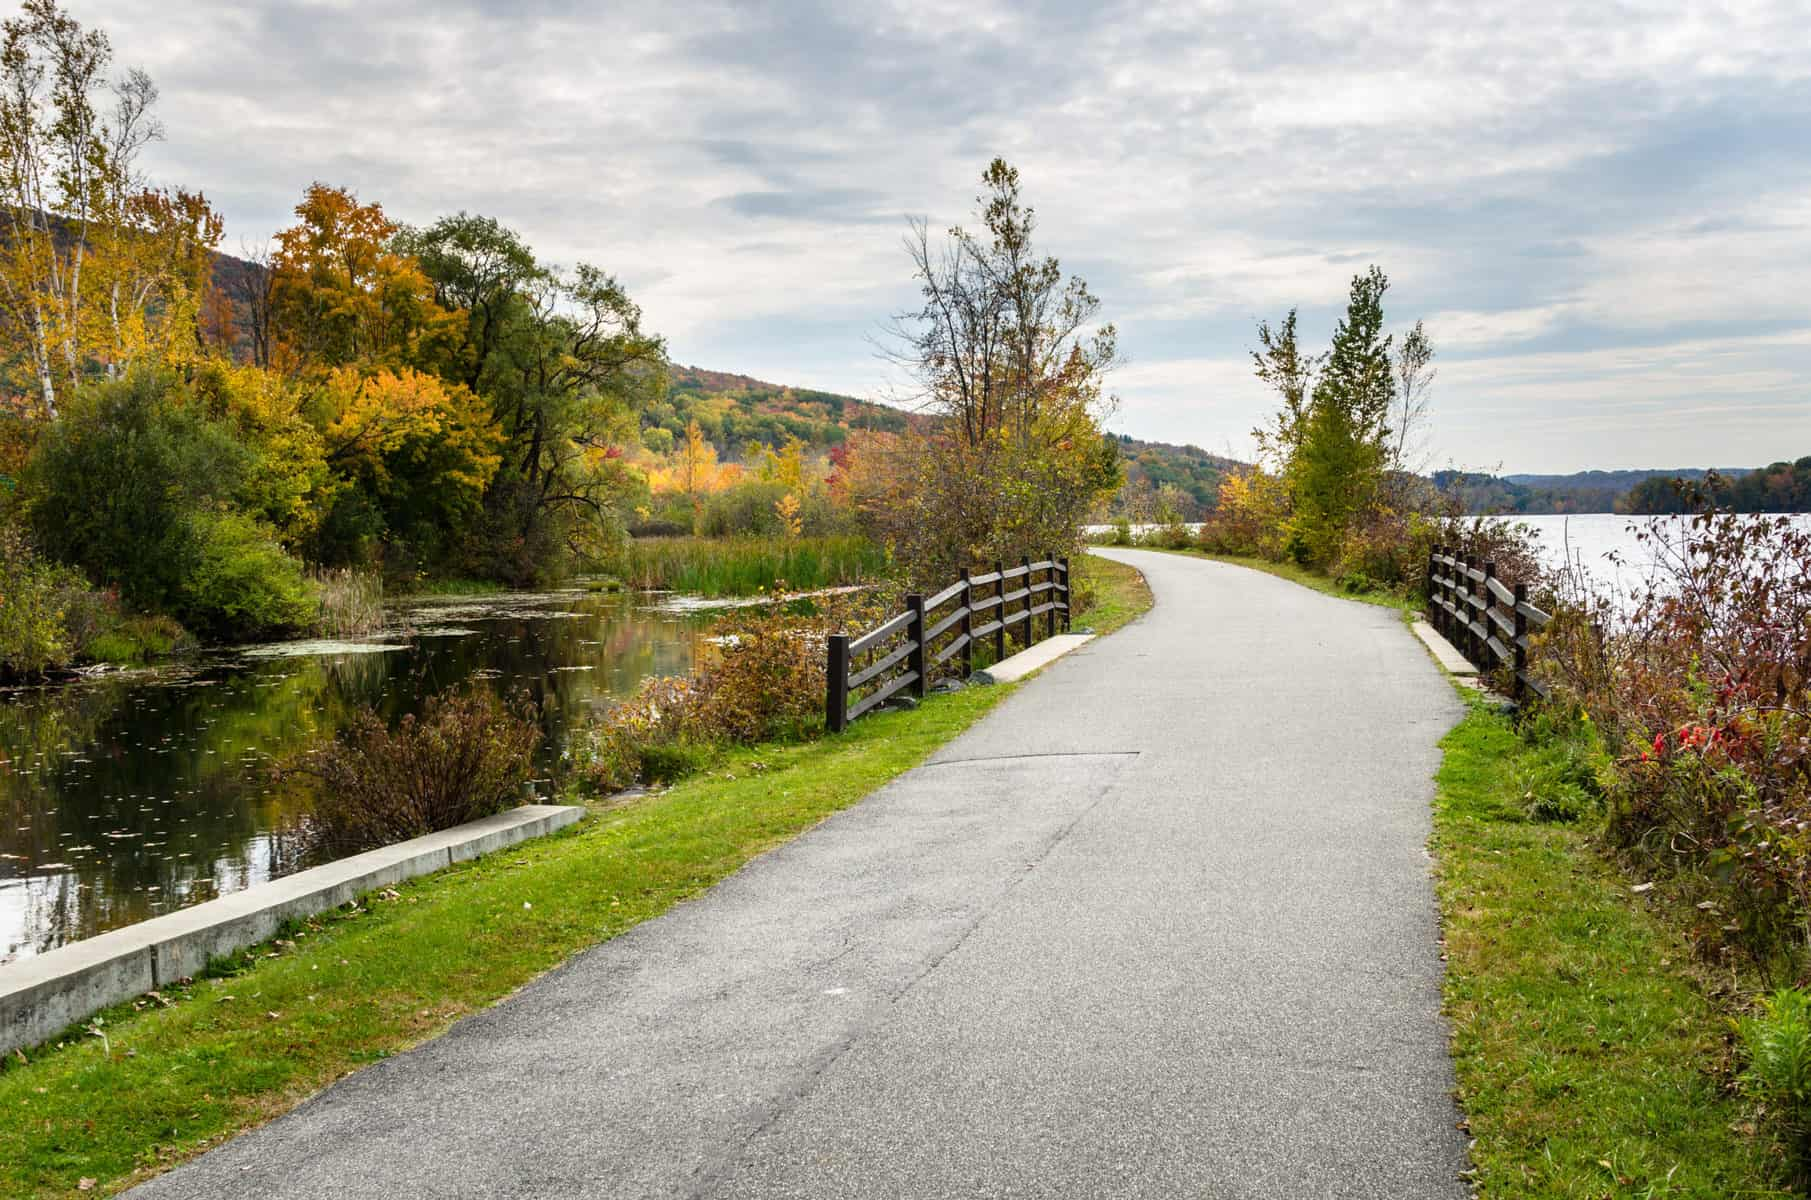 Winding Laakeside Path for Pedestrian and Cyclists on a Cloudy Autumn Day. The Berkshires, MA